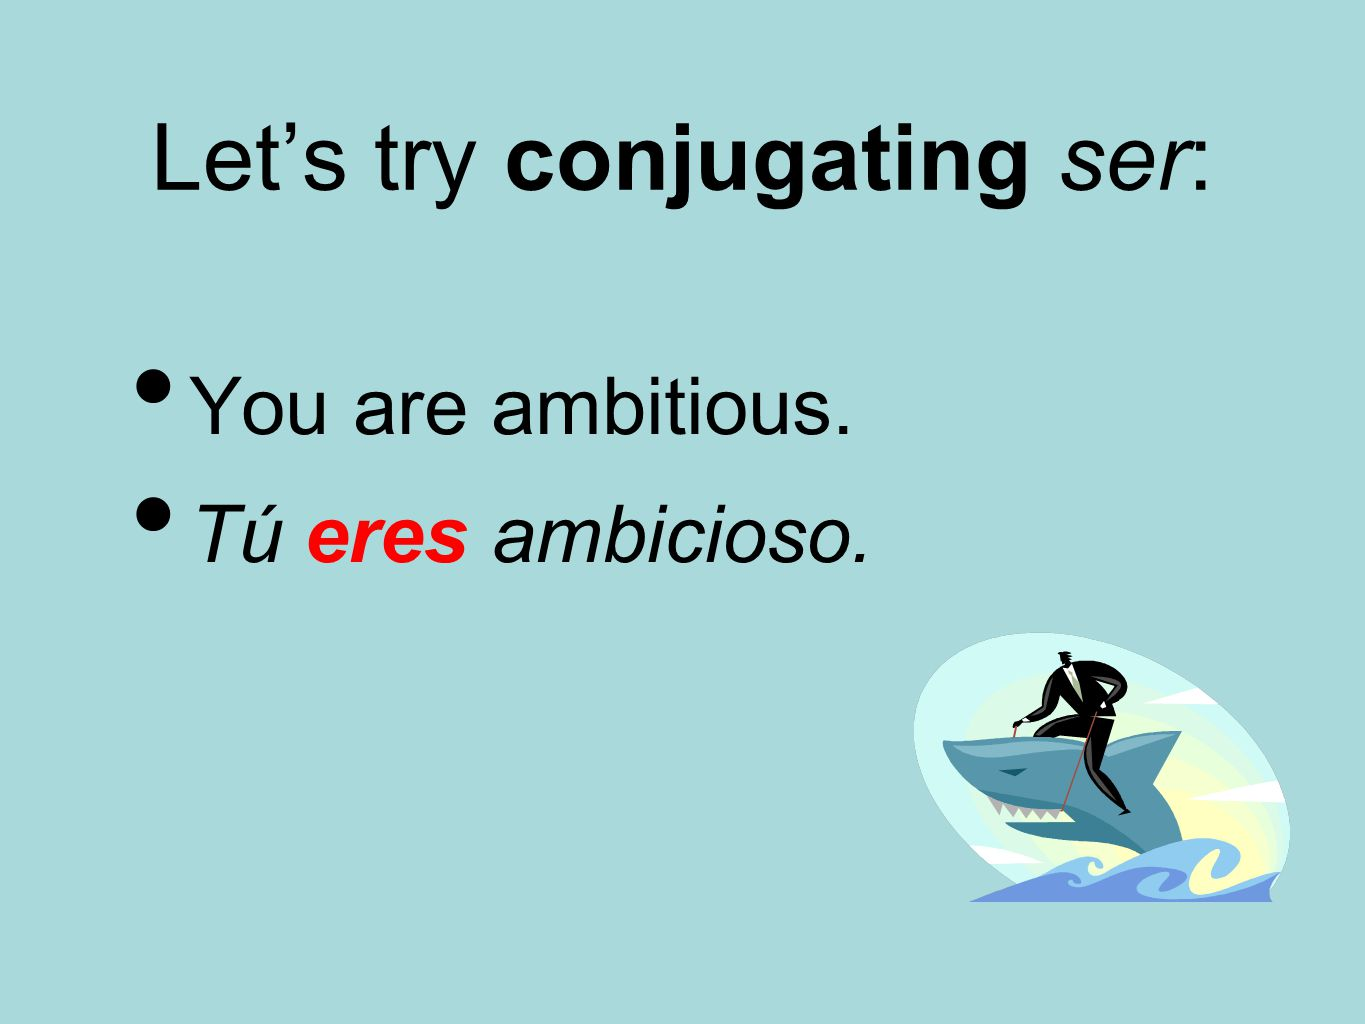 Let's try conjugating ser: You are ambitious. Tú eres ambicioso.